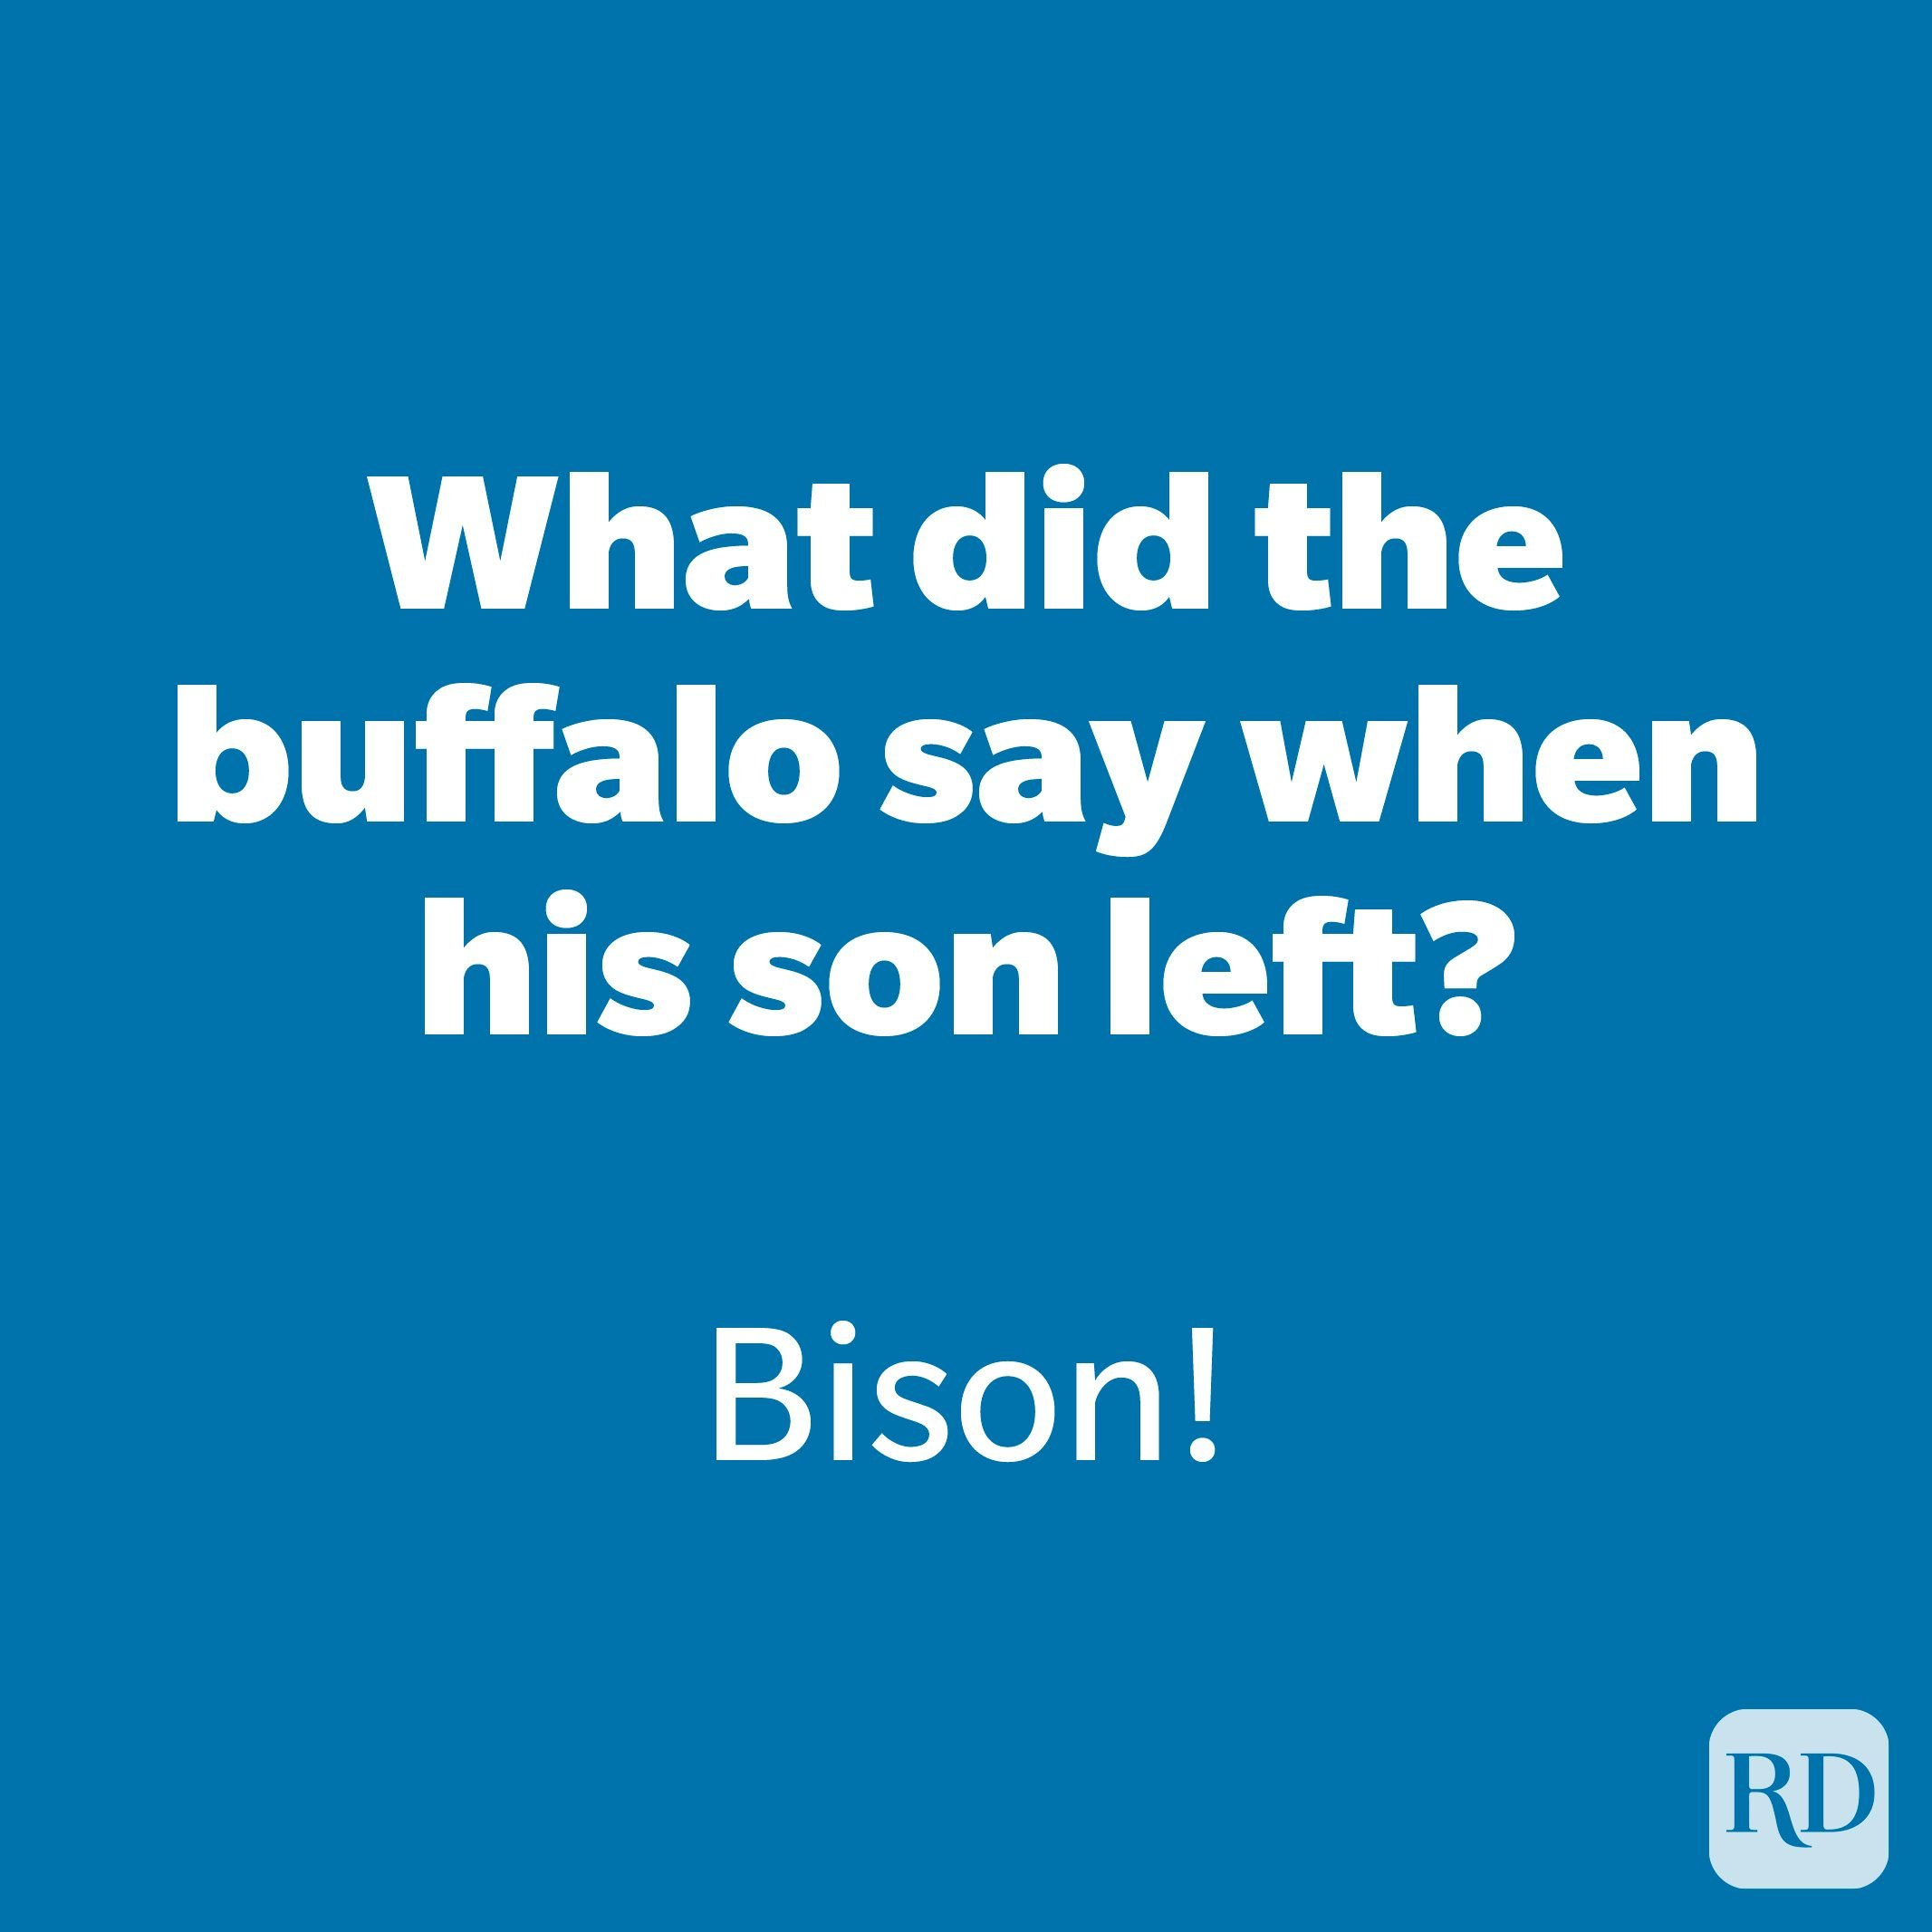 What did the buffalo say when his son left?